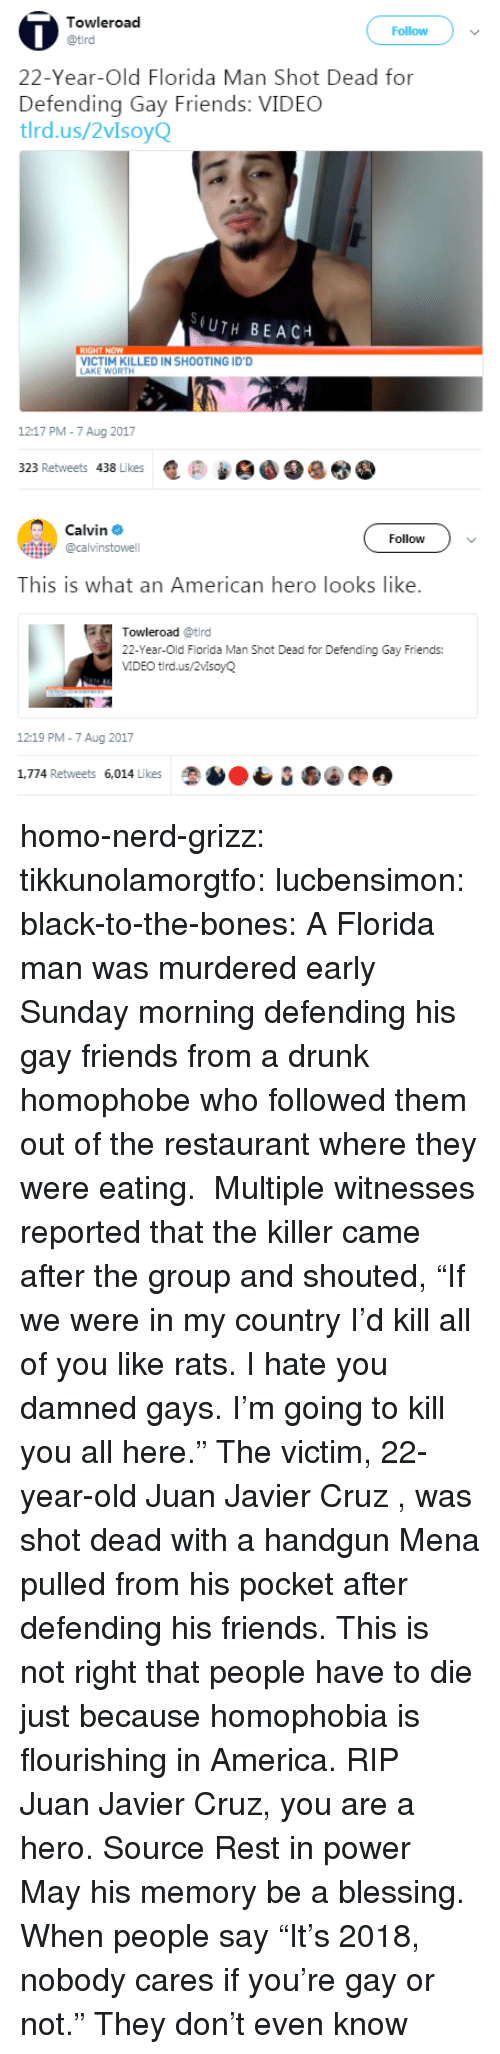 "handgun: Towleroad  Follow  22-Year-Old Florida Man Shot Dead for  Defending Gay Friends: VIDEC  tlrd.us/2vIsoyQ  (UTH BEACH  VICTIM KILLED IN SHOOTING ID'D  AKE WORTH  1217 PM-7 Aug 2017  323 Retweets 438 Likes匿@   Calvin Φ  @calvinstowell  Follow  This is what an American hero looks like.  Towleroad @tird  22-Year-Old Florida Man Shot Dead for Defending Gay Friends:  VIDEO tird.us/2vlsoyQ  12:19 PM-7 Aug 2017  1,774 Retweets 6,014 Likes homo-nerd-grizz: tikkunolamorgtfo:  lucbensimon:  black-to-the-bones:     A Florida man was murdered early Sunday morning defending his gay friends from a drunk homophobe who followed them out of the restaurant where they were eating.  Multiple witnesses reported that the killer came after the group and shouted, ""If we were in my country I'd kill all of you like rats. I hate you damned gays. I'm going to kill you all here.""   The victim, 22-year-old Juan Javier Cruz , was shot dead with a handgun Mena pulled from his pocket after defending his friends.   This is not right that people have to die just because homophobia is flourishing in America. RIP   Juan Javier Cruz, you are a hero. Source   Rest in power  May his memory be a blessing.   When people say ""It's 2018, nobody cares if you're gay or not."" They don't even know"